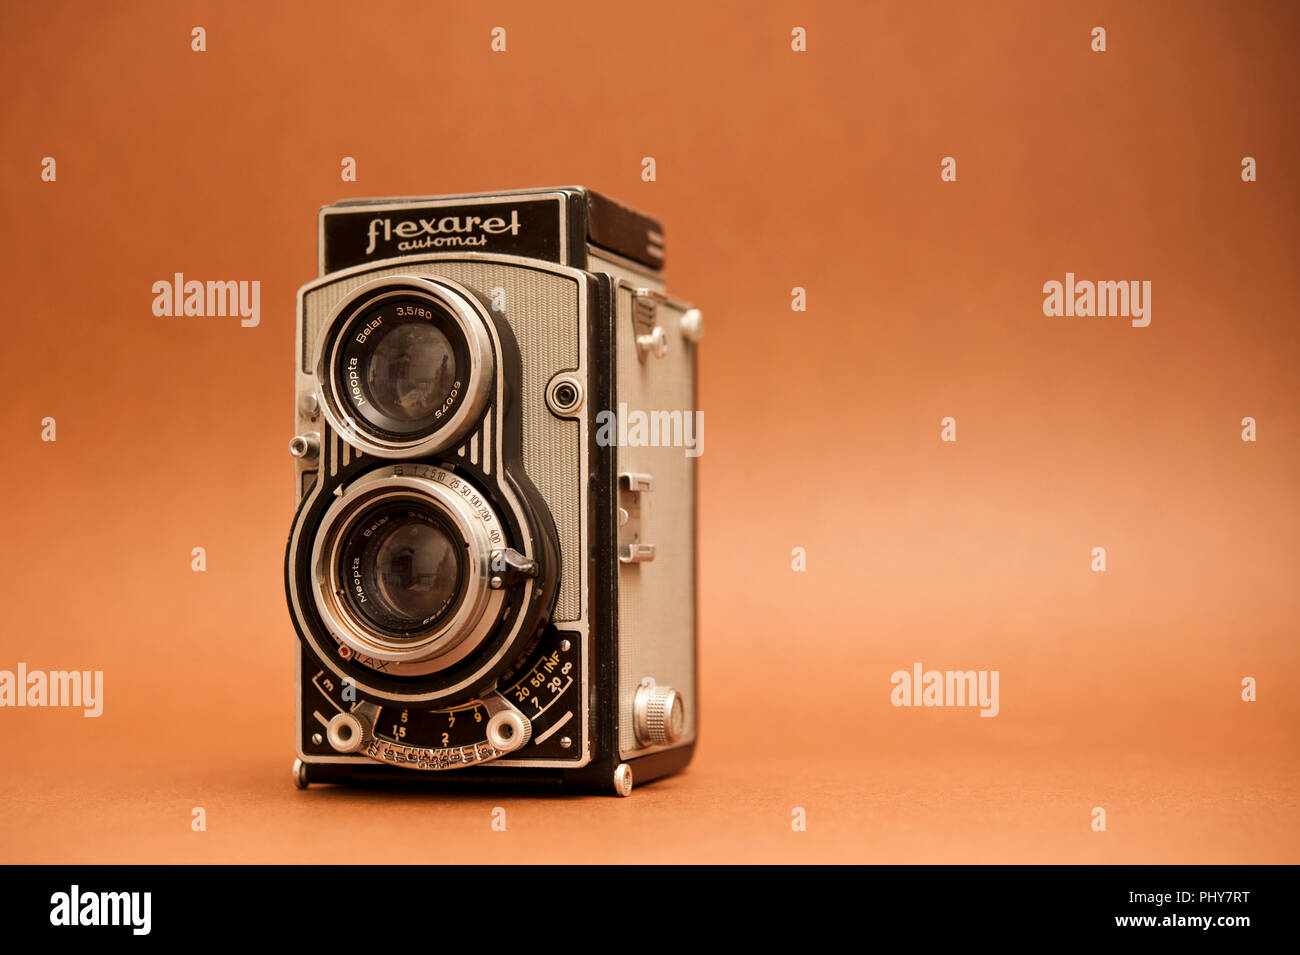 Flexaret Automat TLR camera - Stock Image